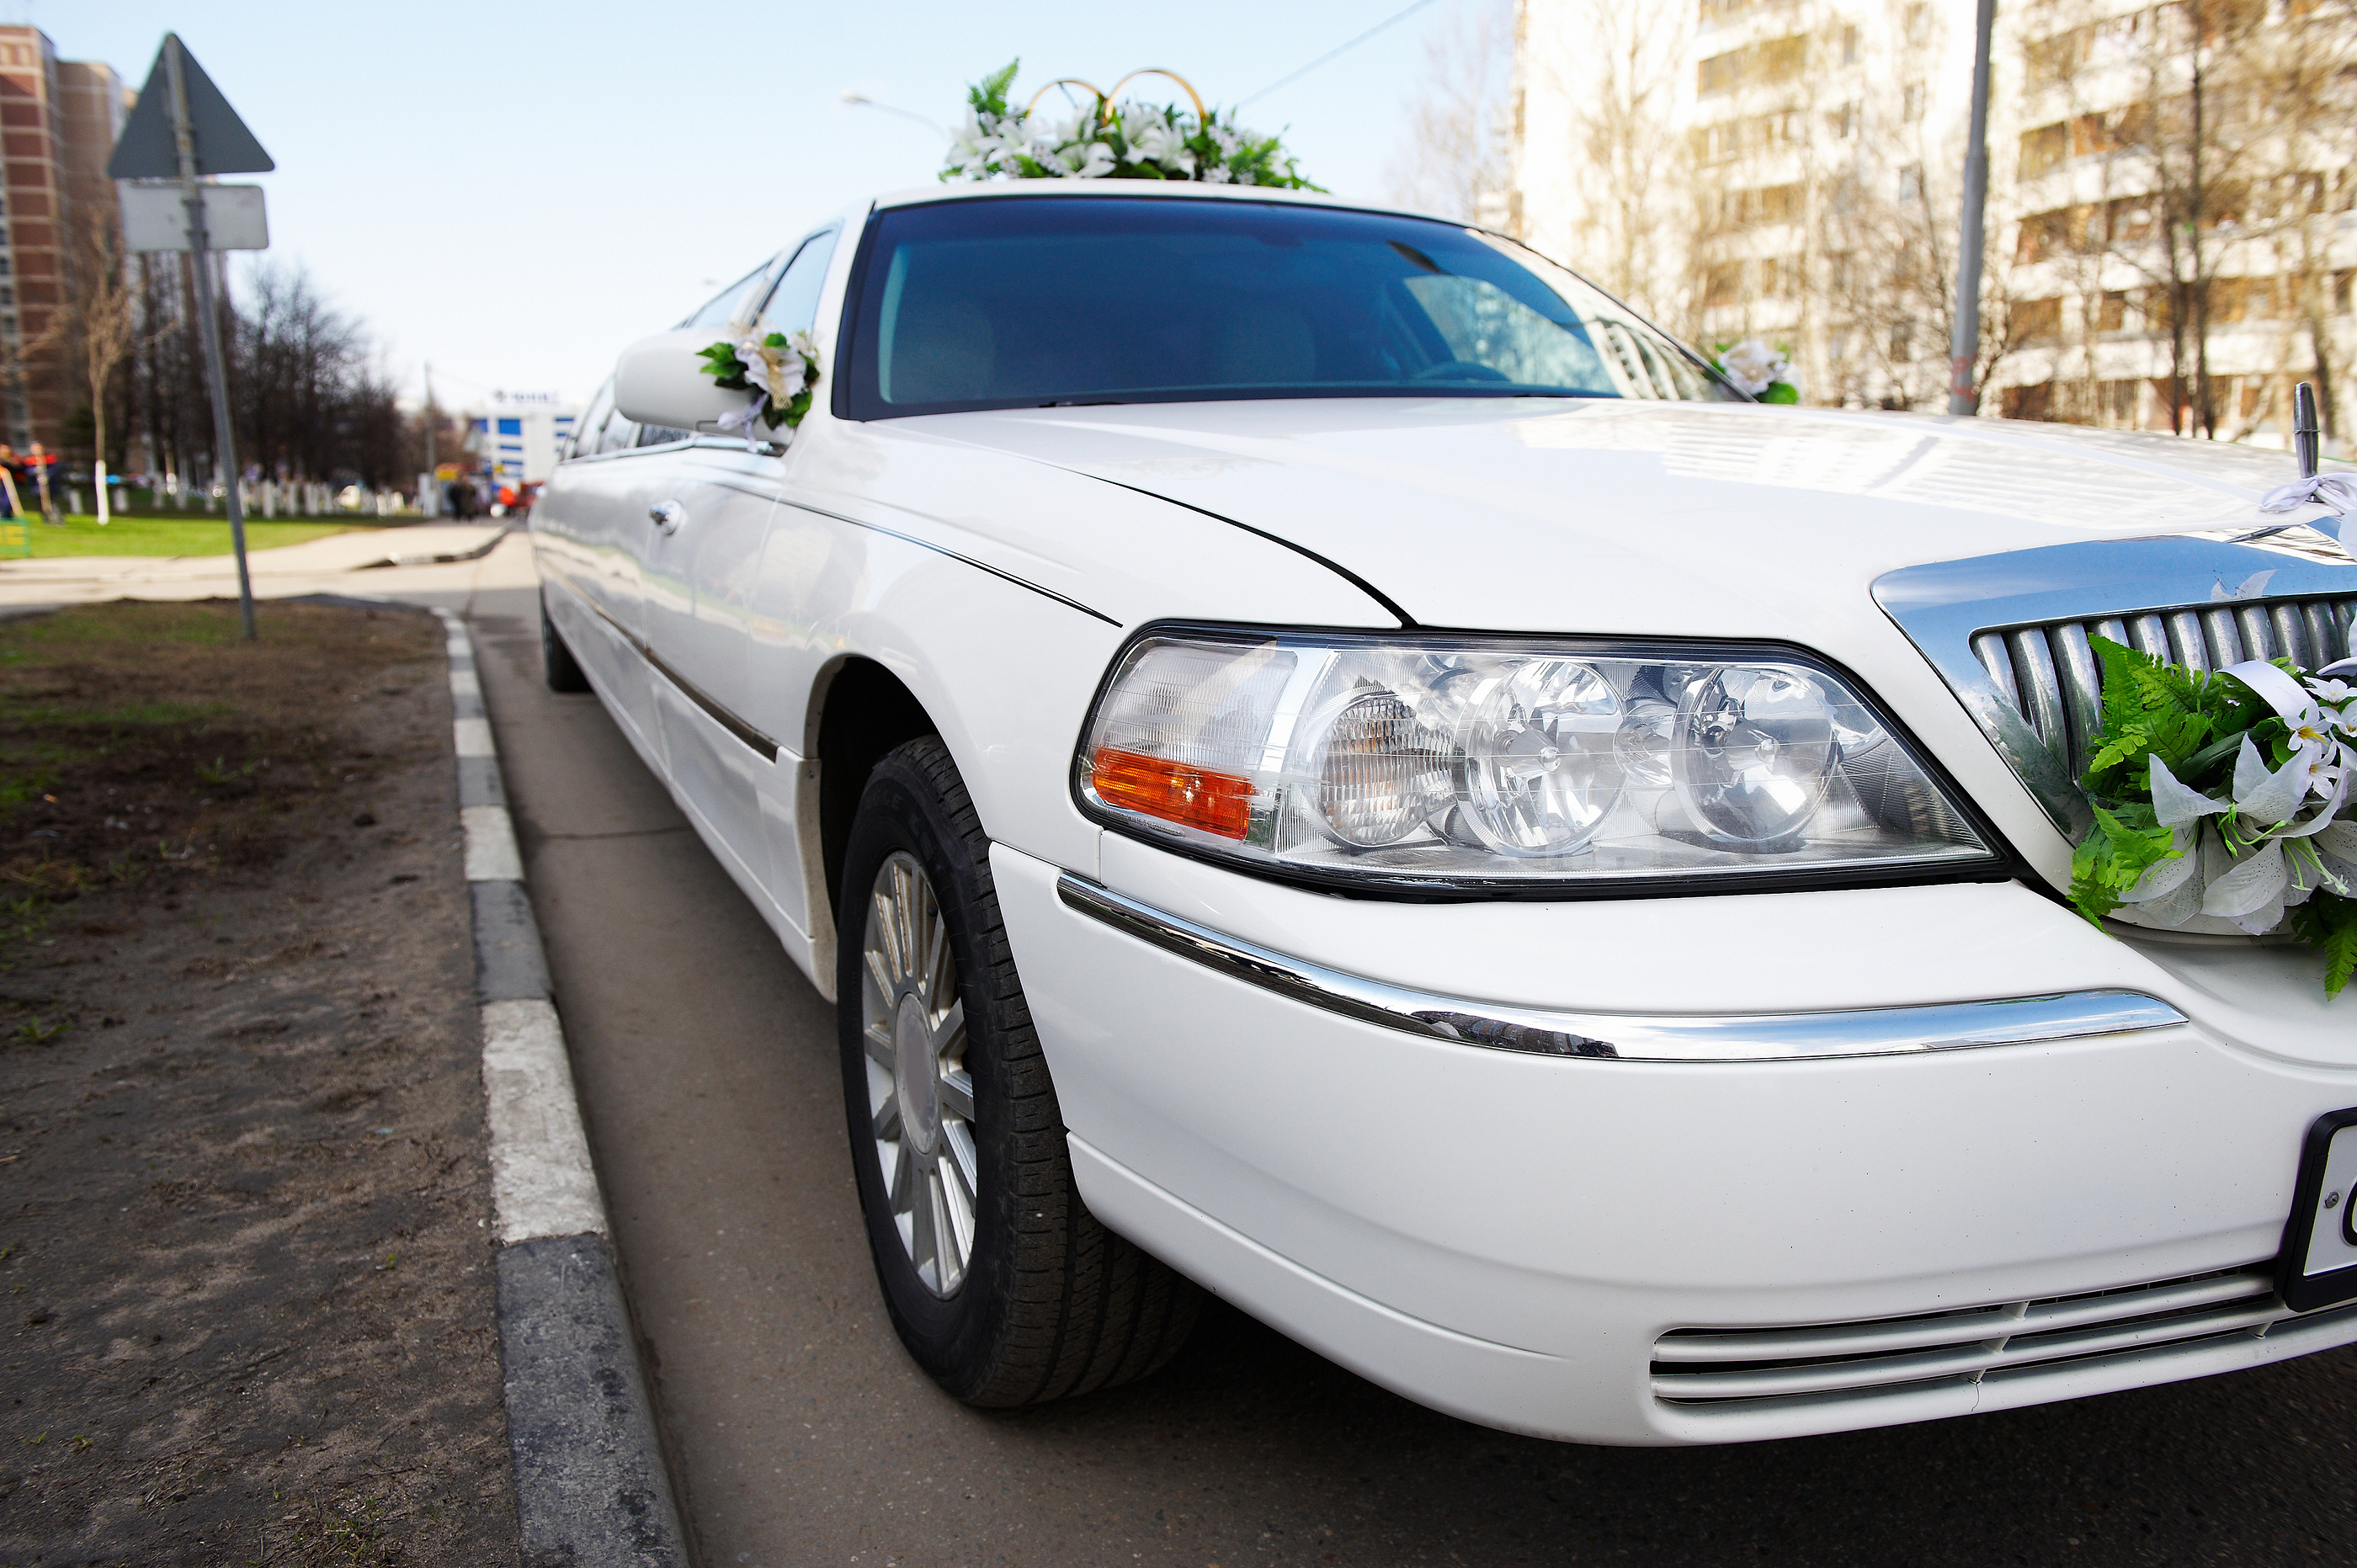 Hudson Valley Trips specializes in limo service in Orange County NY